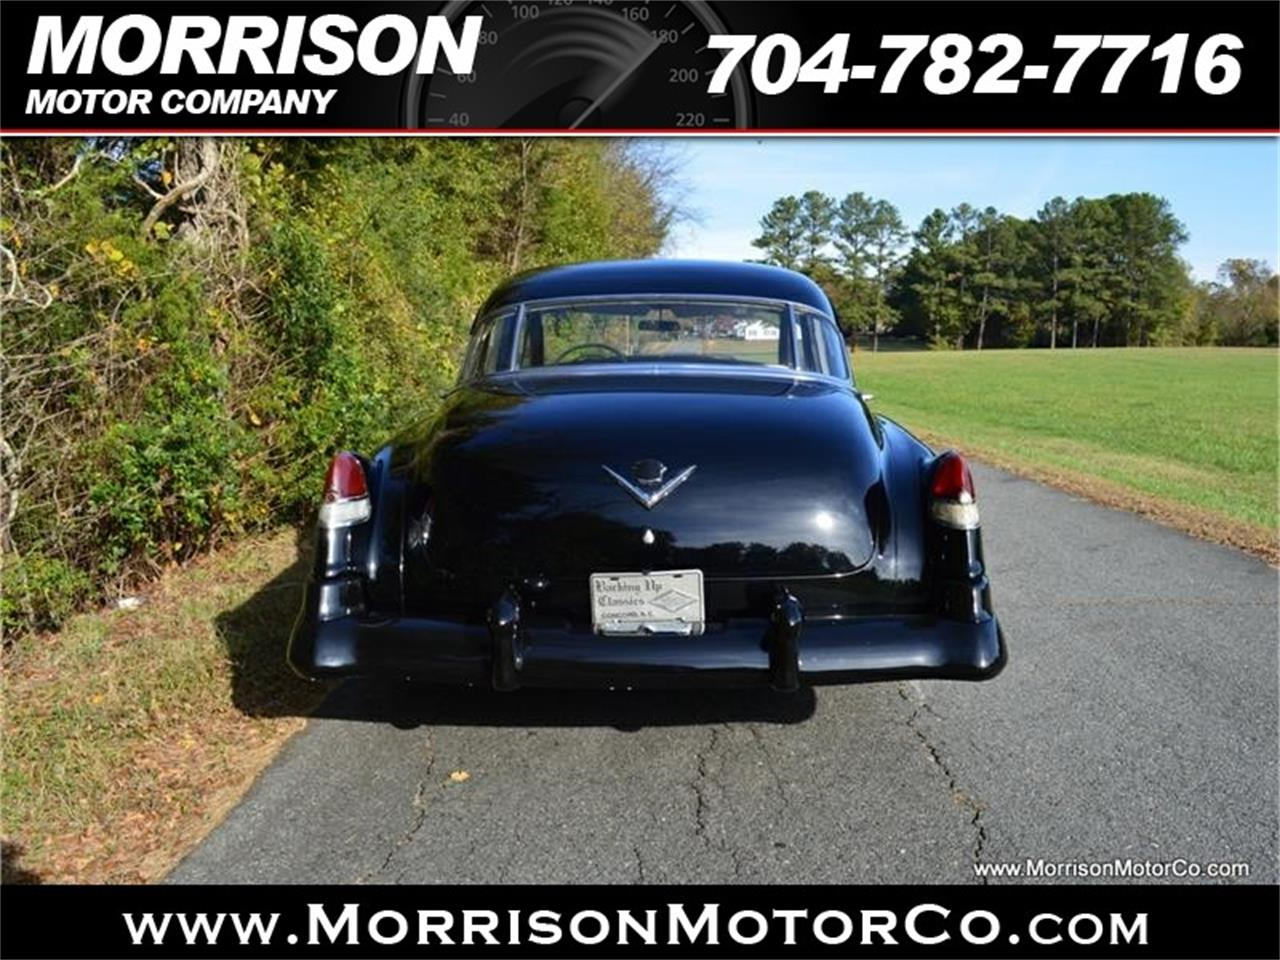 Large Picture of 1951 DeVille Offered by Morrison Motor Company - MBTG